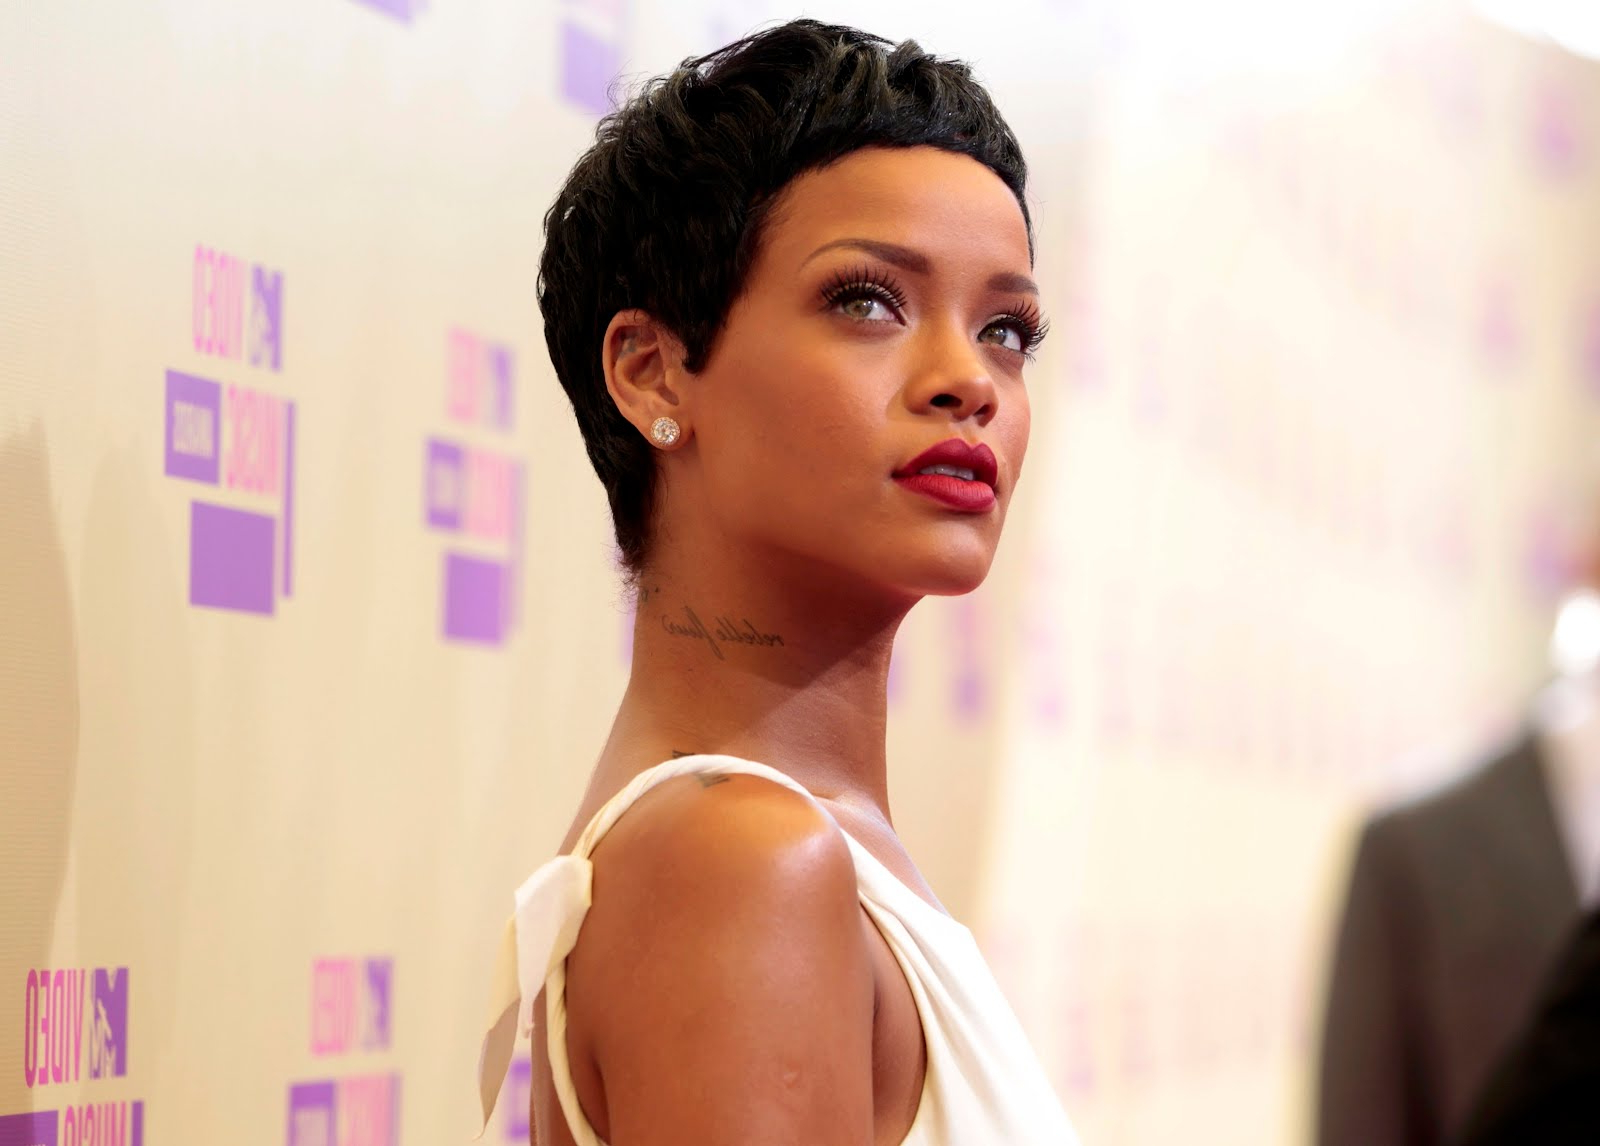 30 Classy To Cute Short Hairstyles For Black Women For Edgy Short Haircuts For Black Women (View 8 of 25)